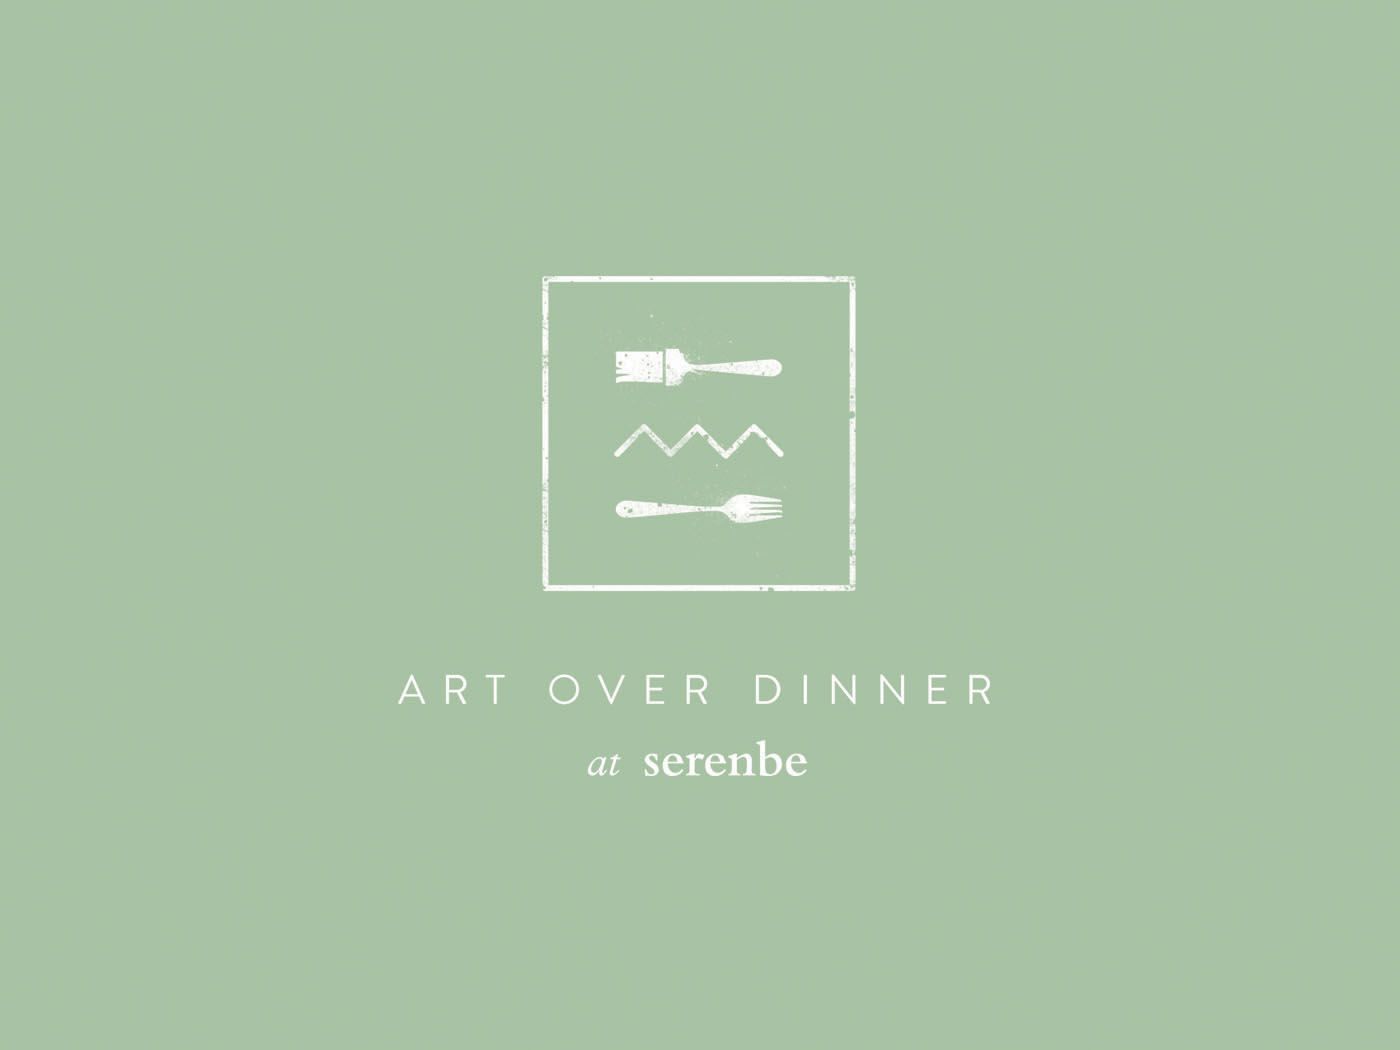 Second logo lockup for Art Over Dinner at Serenbe is part of the overall visual brand identity design for the dinner series of artist events.